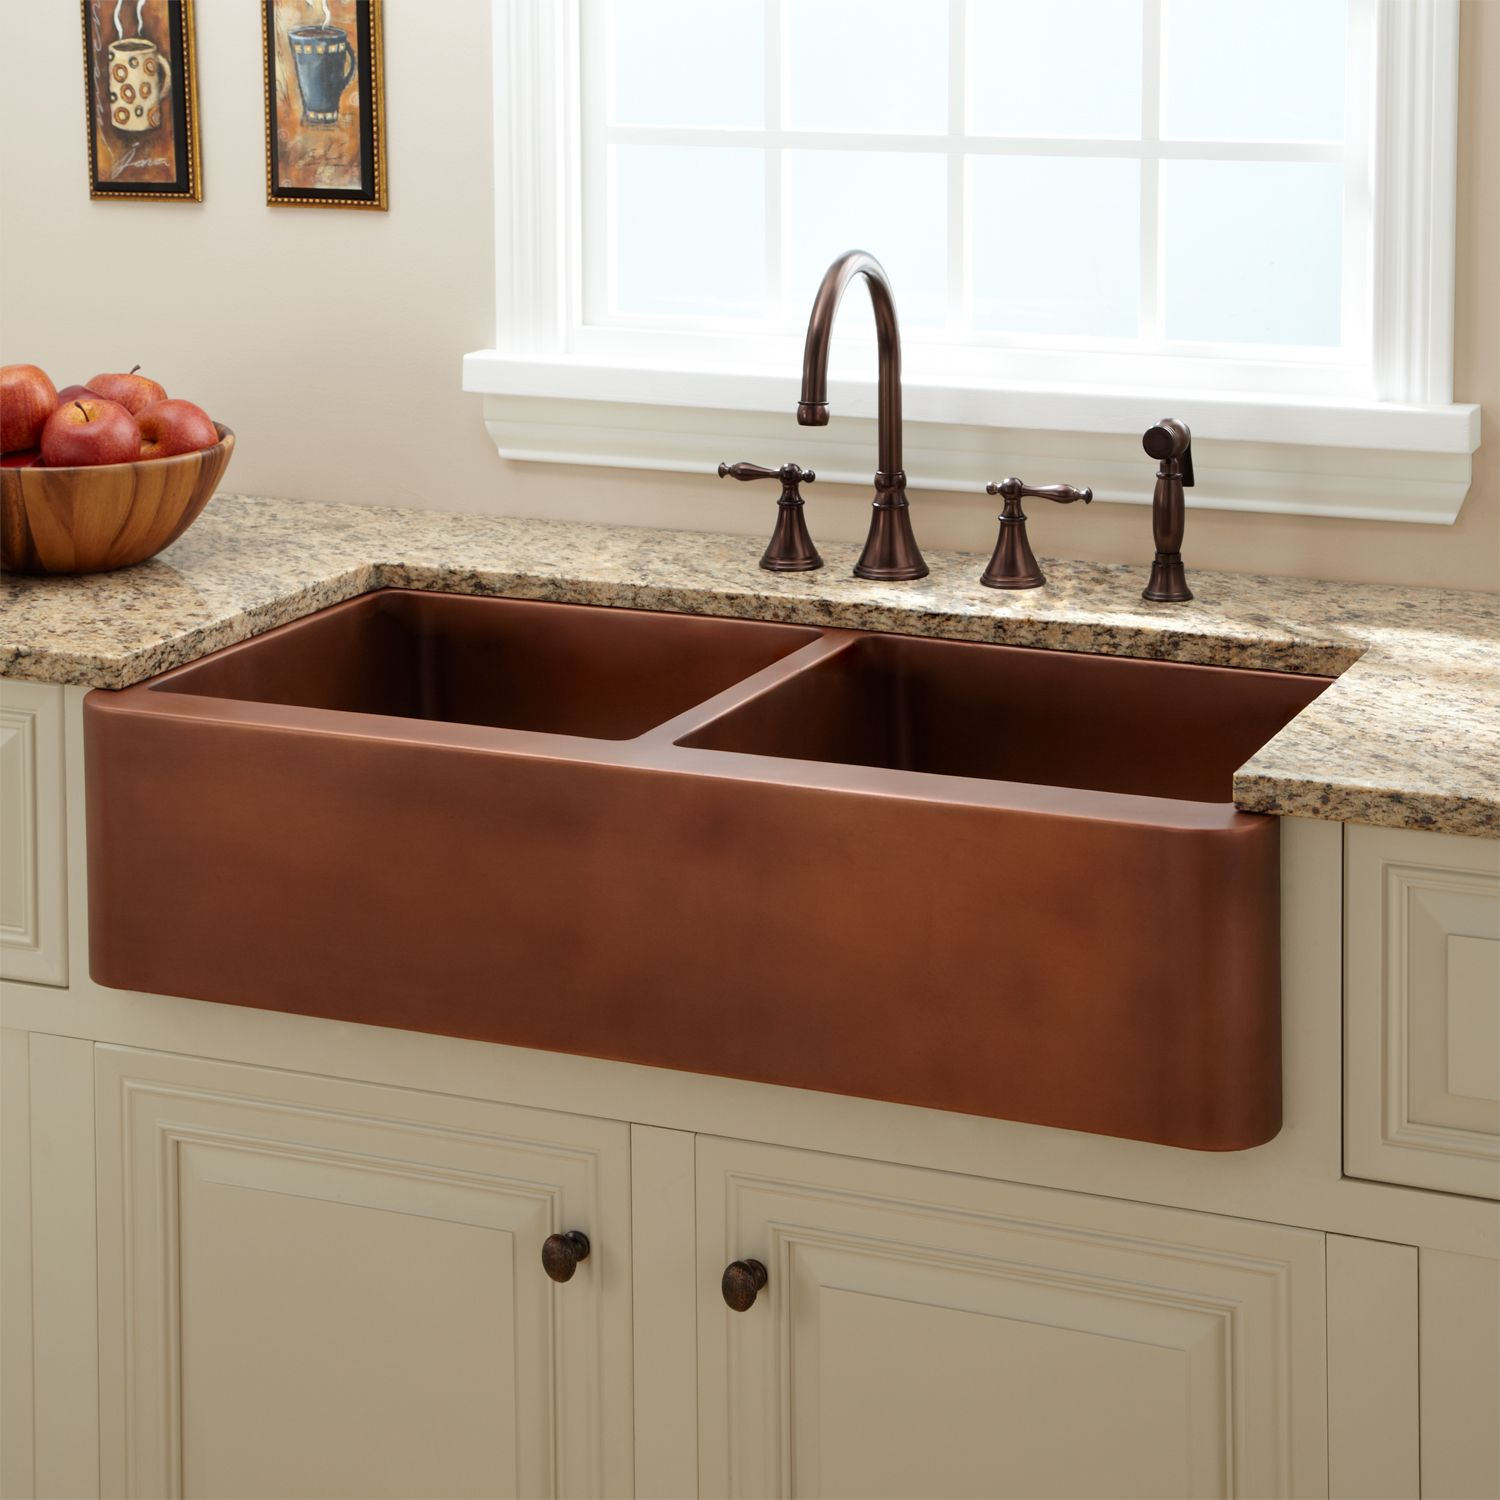 Astounding double copper farmhouse sink with double handle